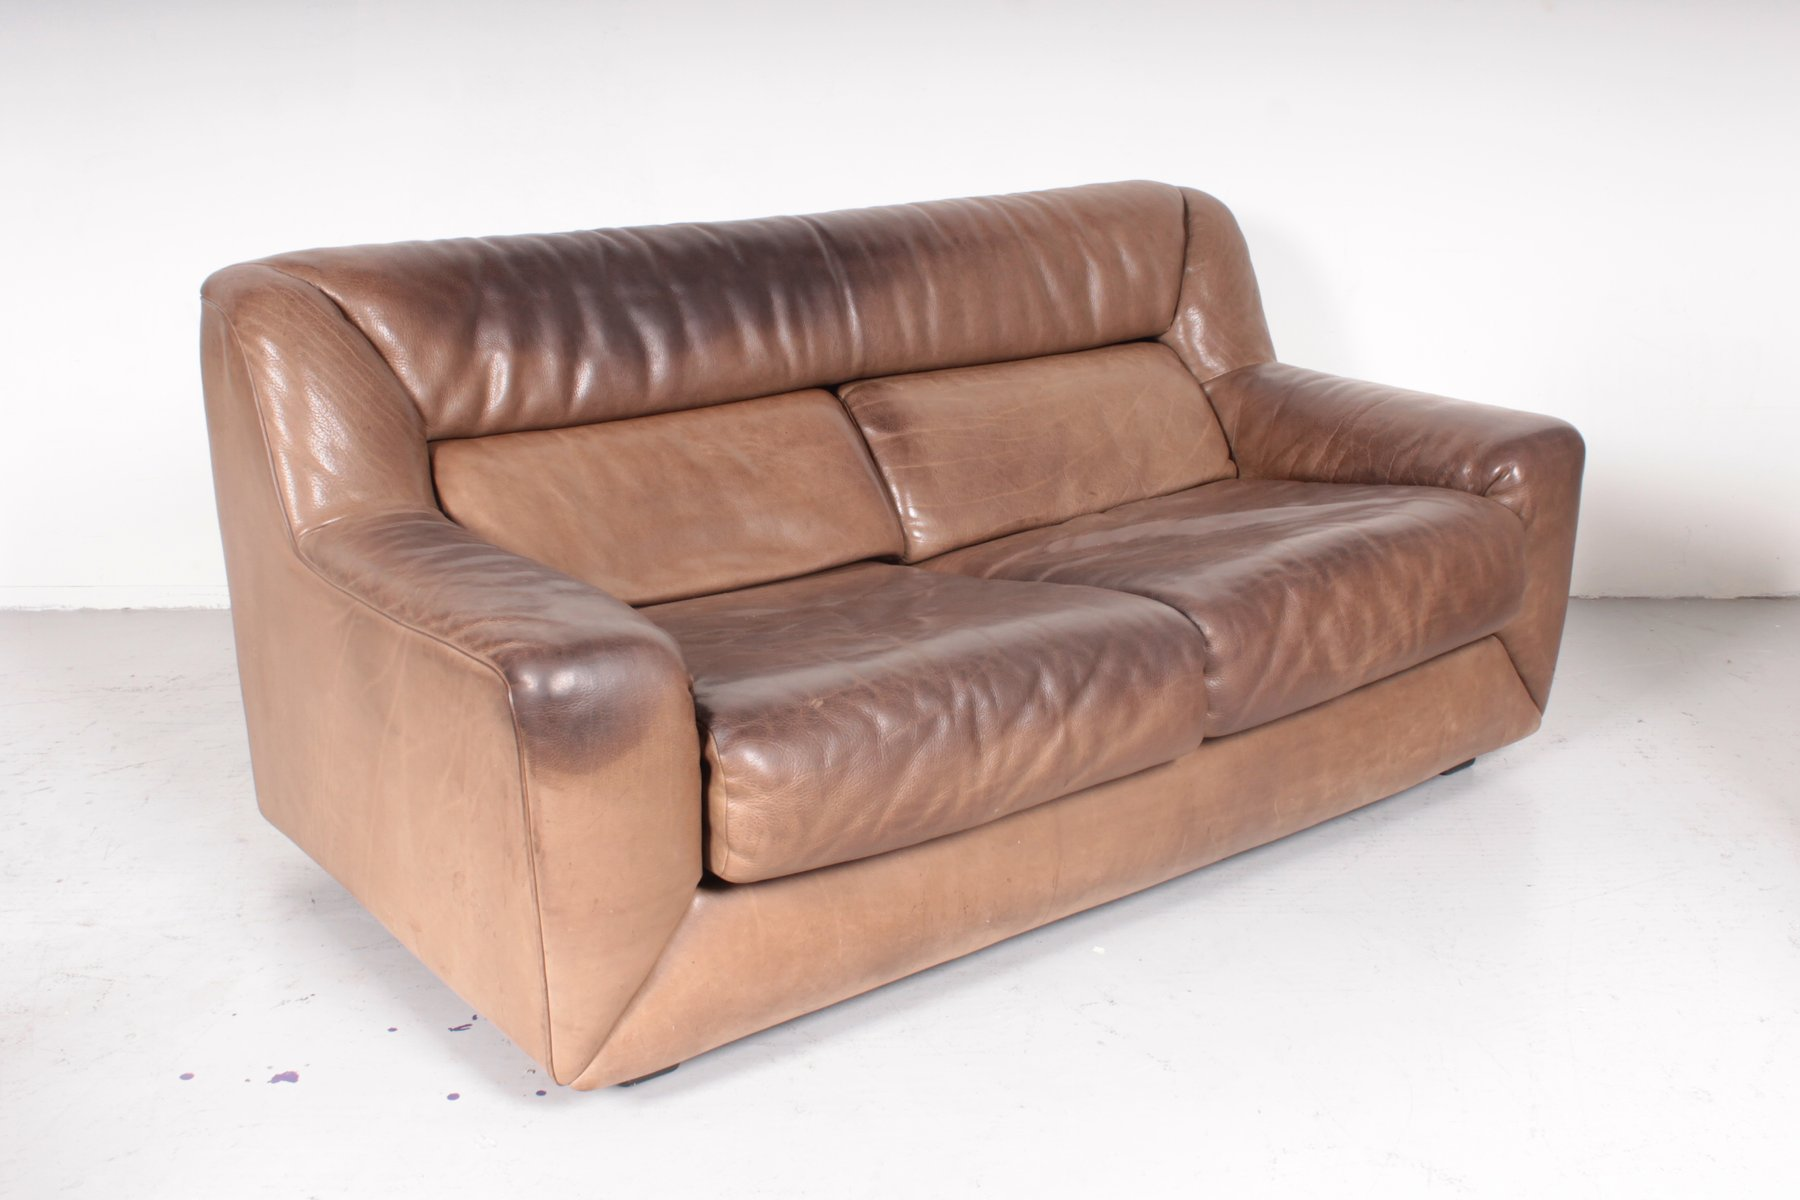 swiss ds43 leather sofa from de sede 1980s for sale at pamono. Black Bedroom Furniture Sets. Home Design Ideas